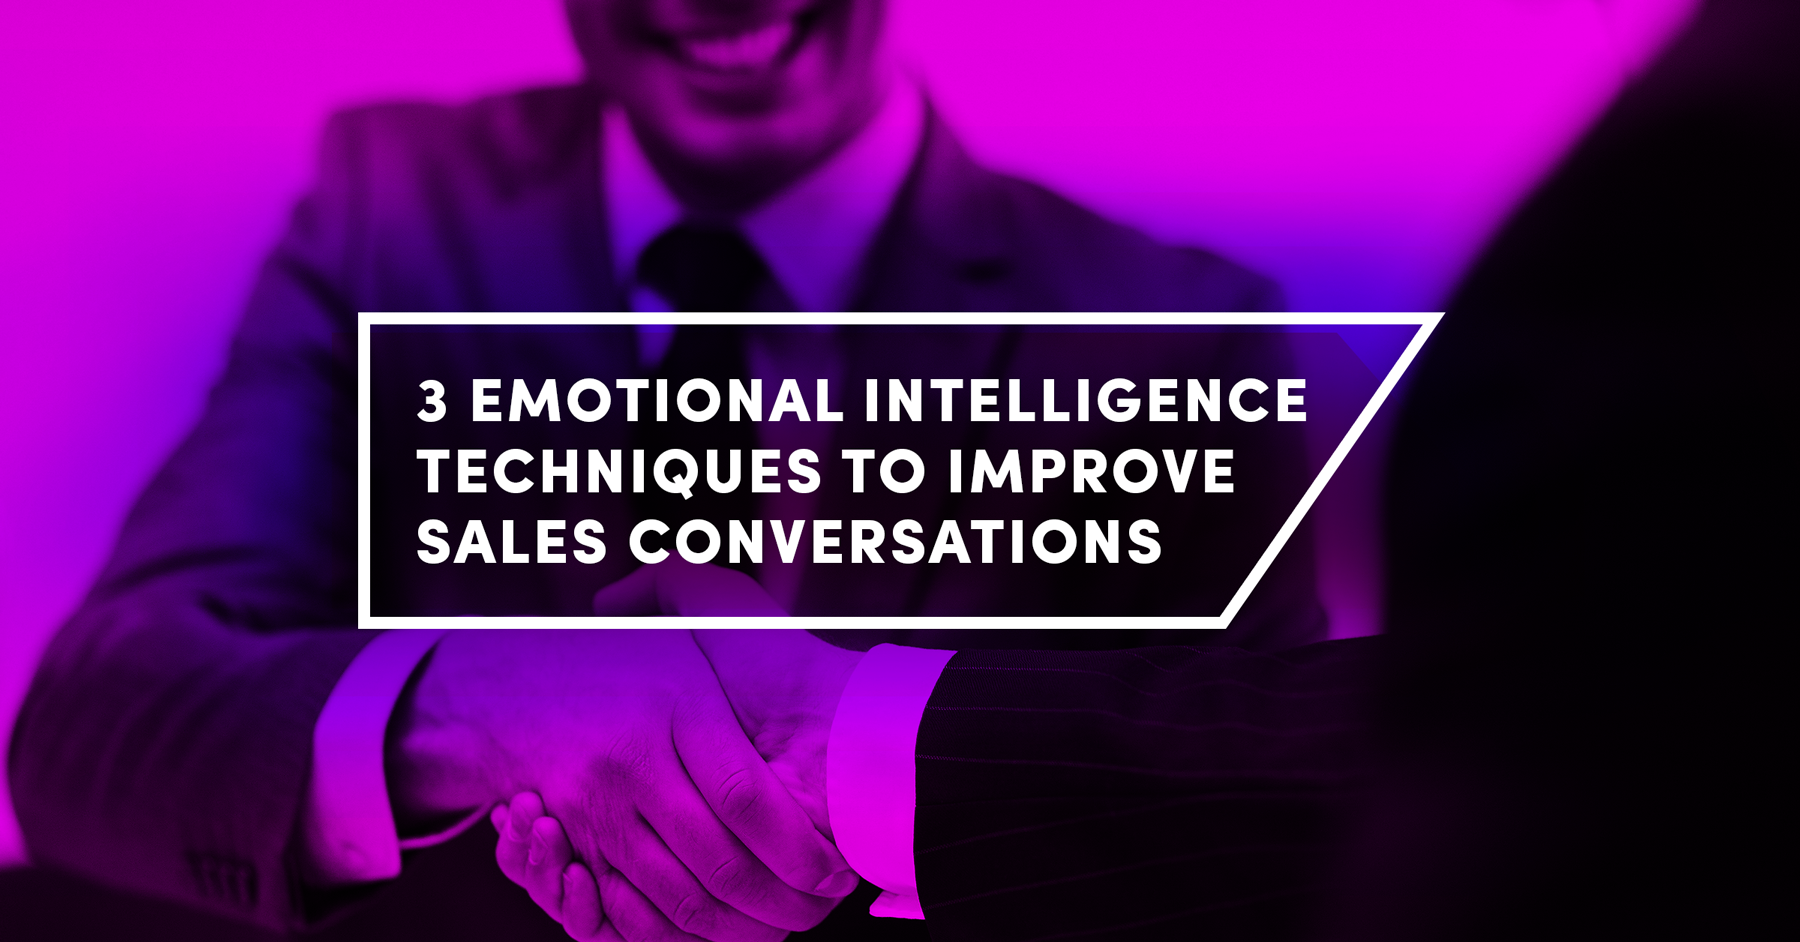 3 Emotional Intelligence Techniques